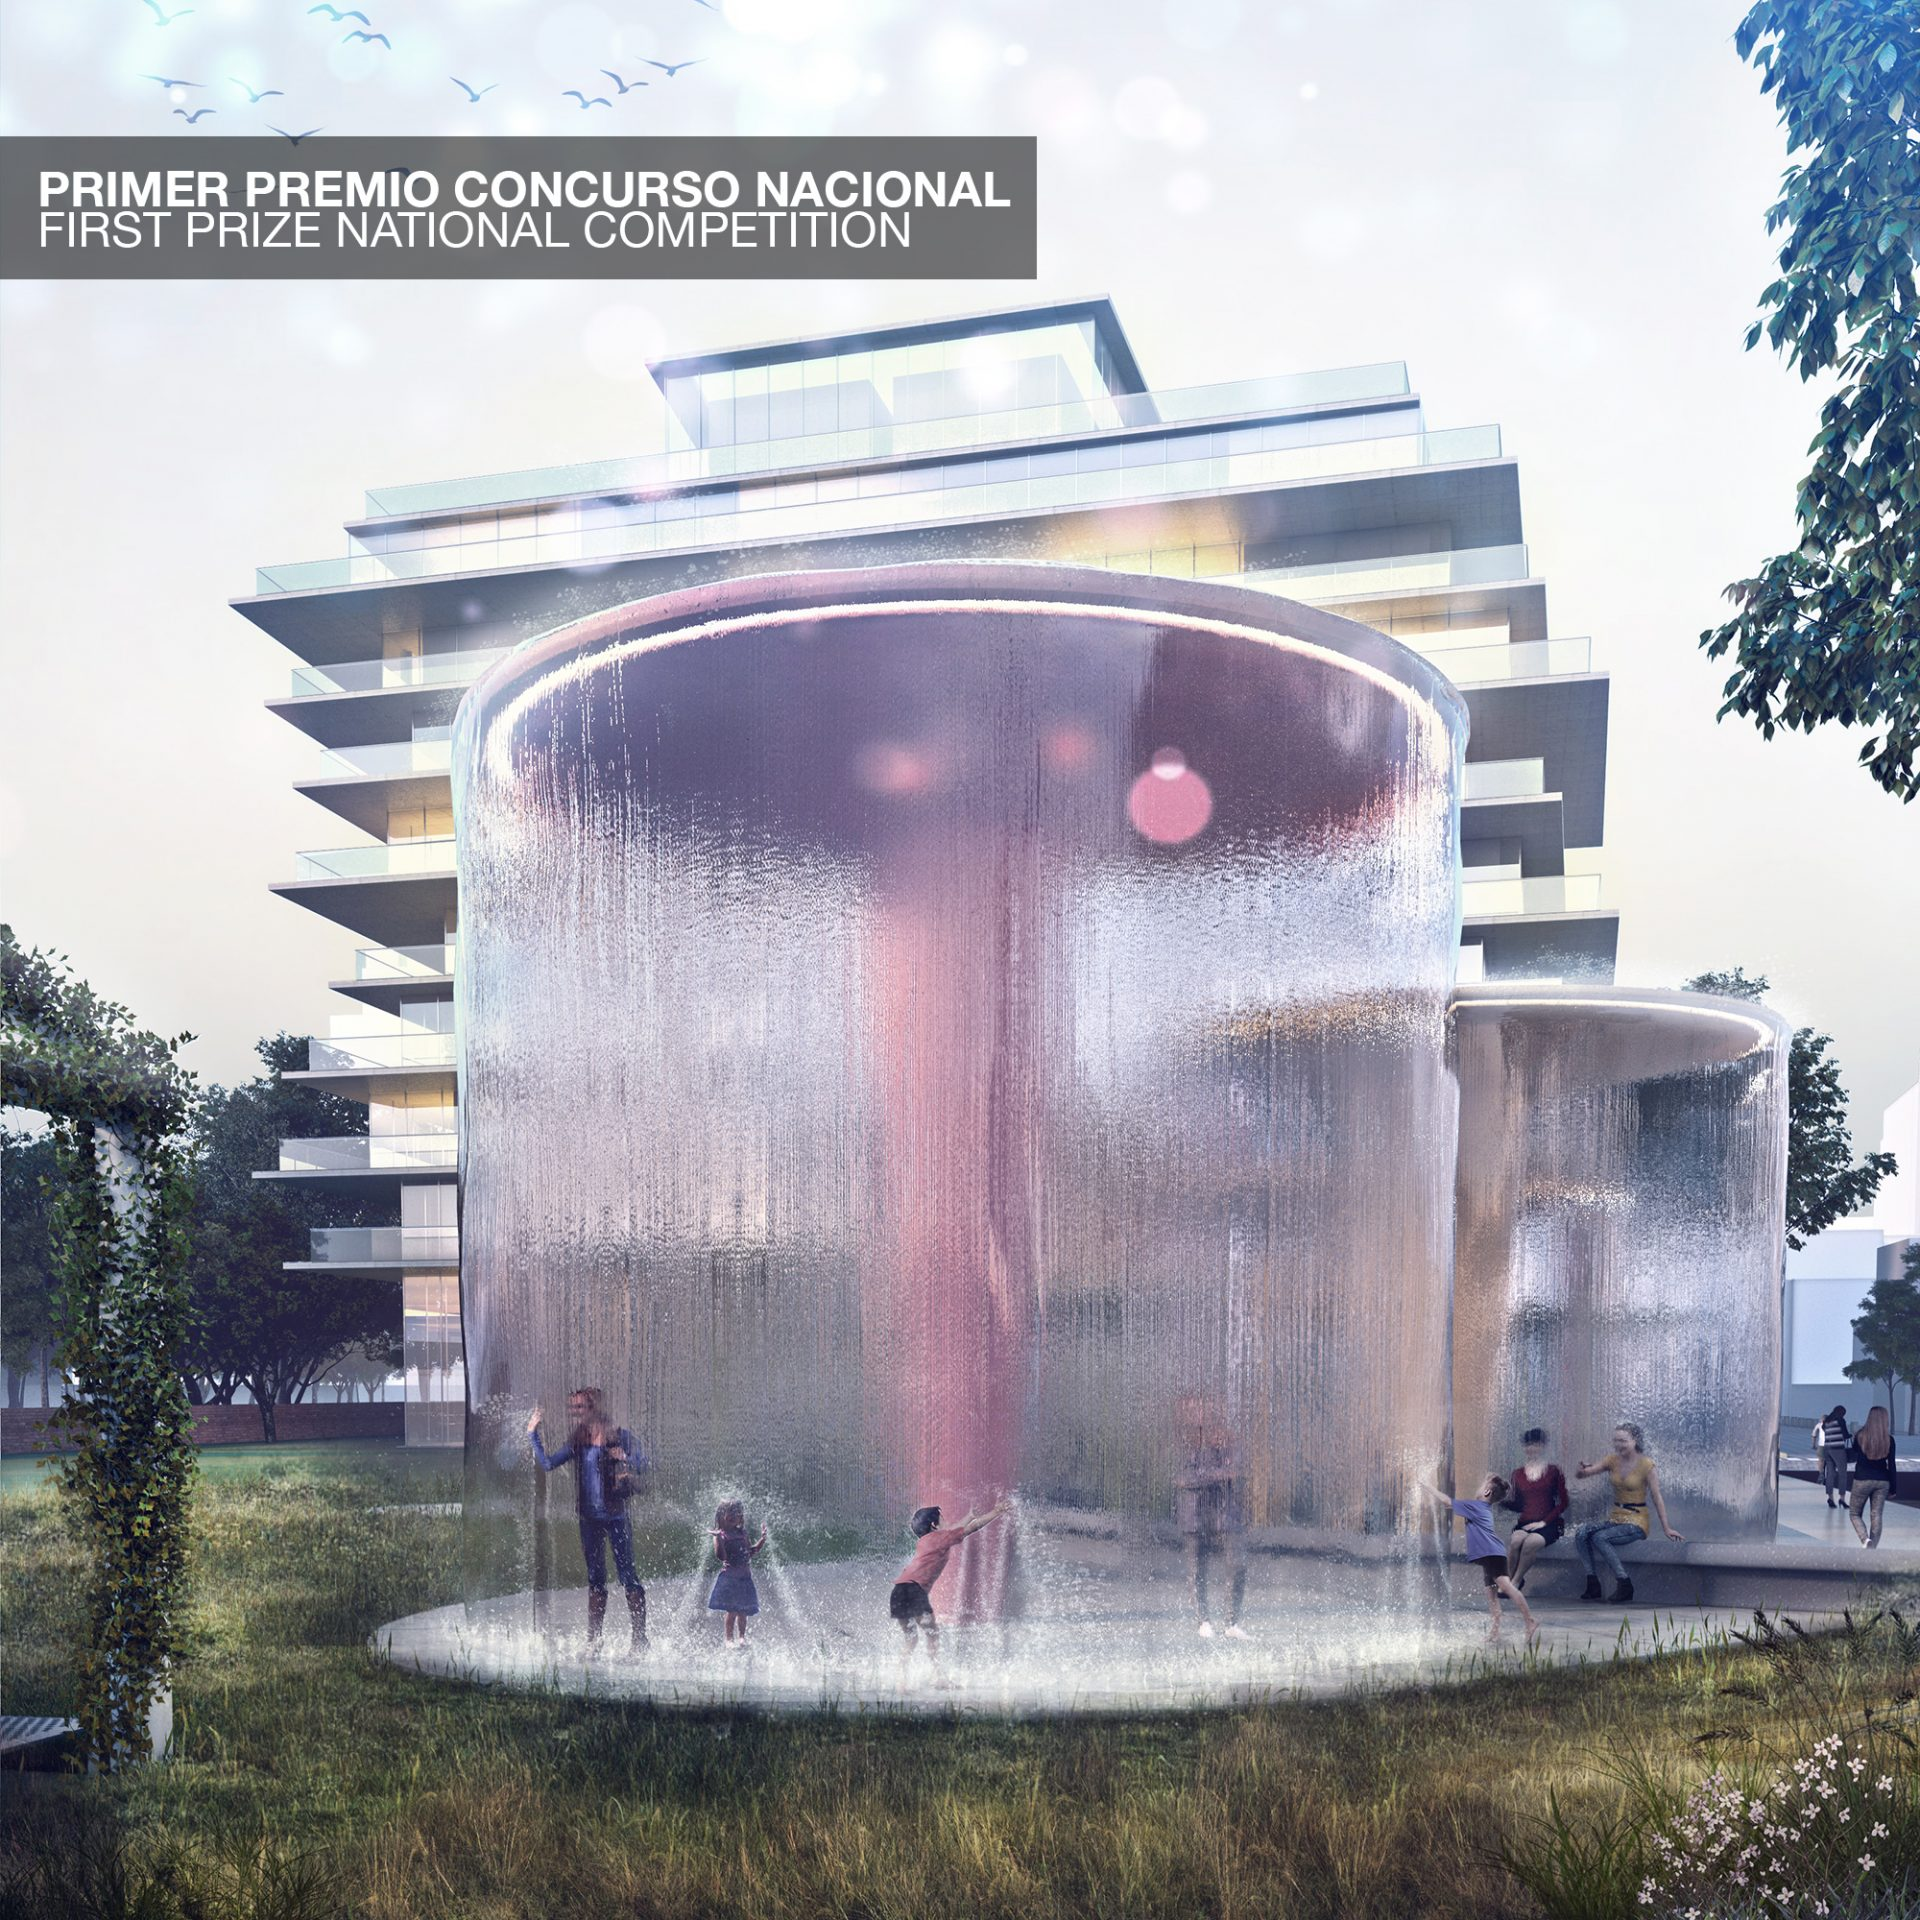 First Prize National Competition Masterplan area Collegiales Inverted fountain, landscape architecture and urbanism